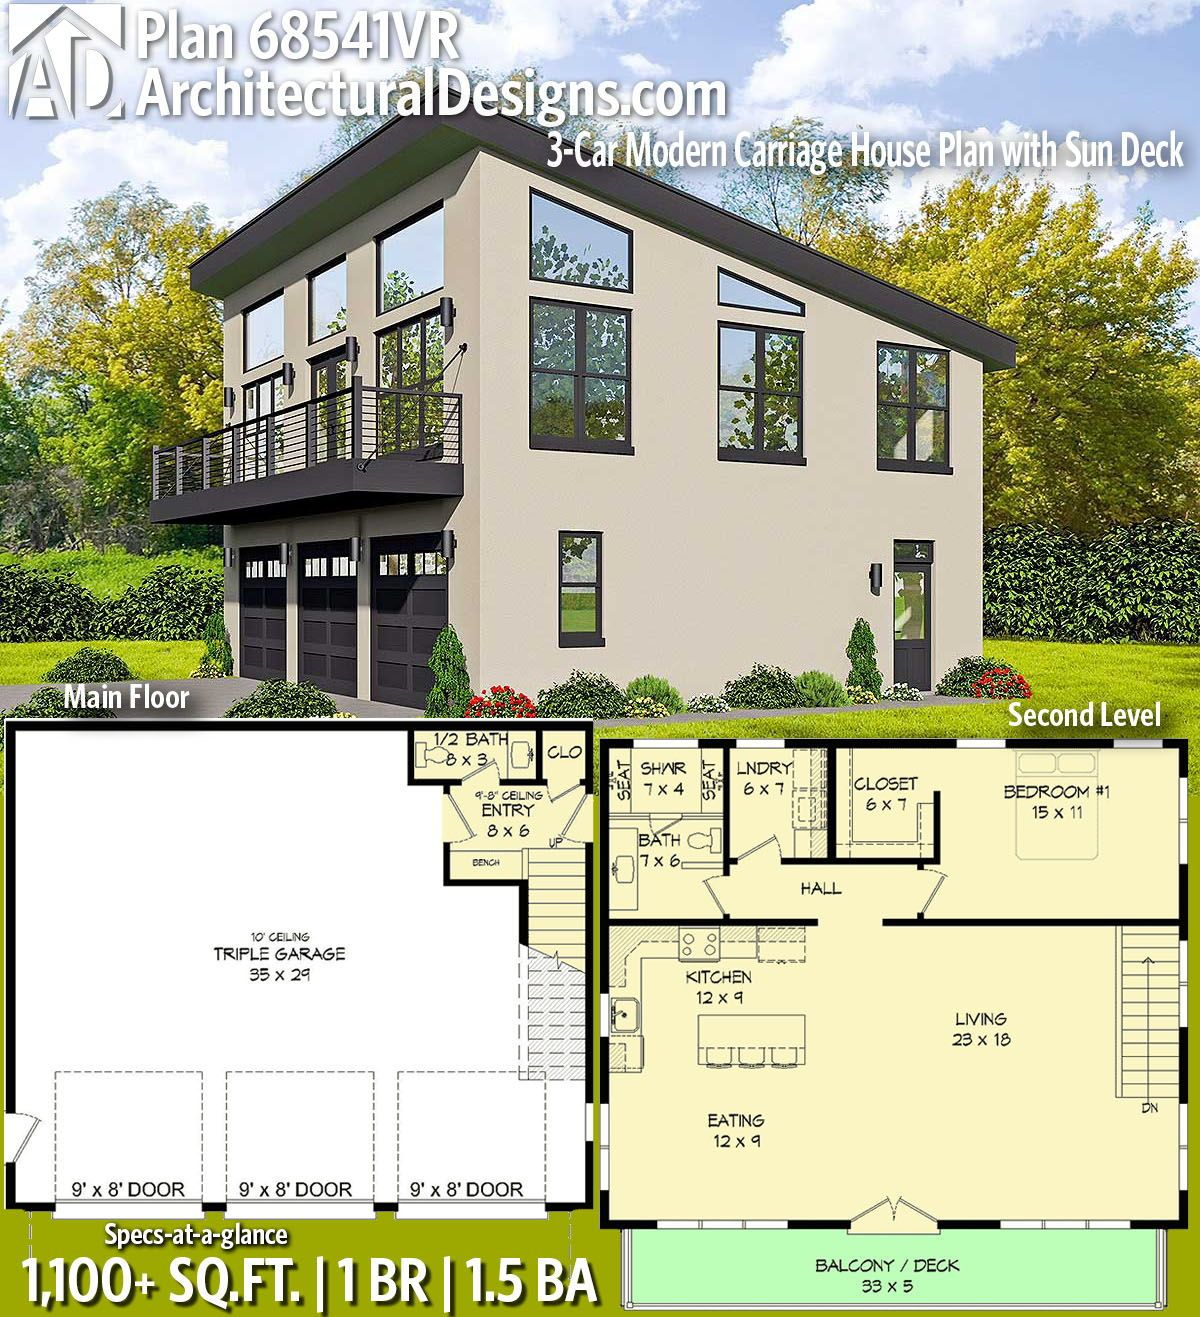 Plan 68541vr 3 Car Modern Carriage House Plan With Sun Deck Carriage House Plans House Plans Garage House Plans